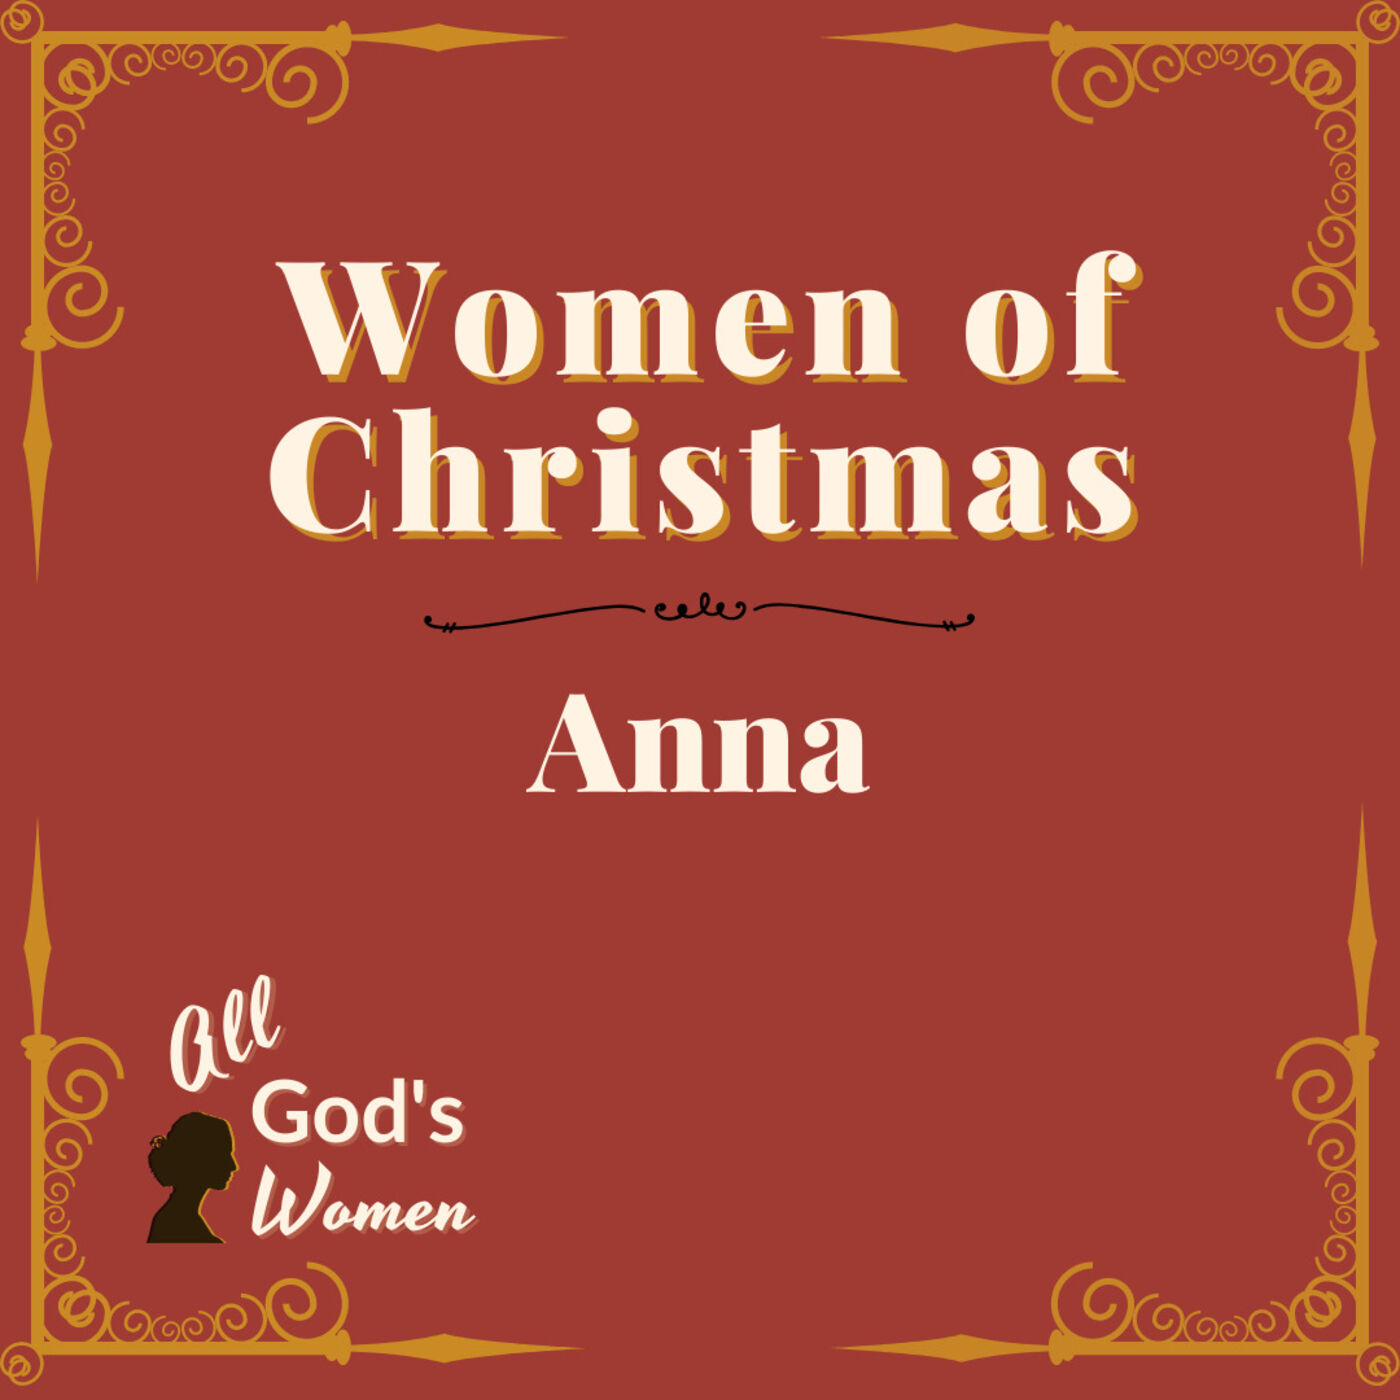 Women of Christmas: Anna